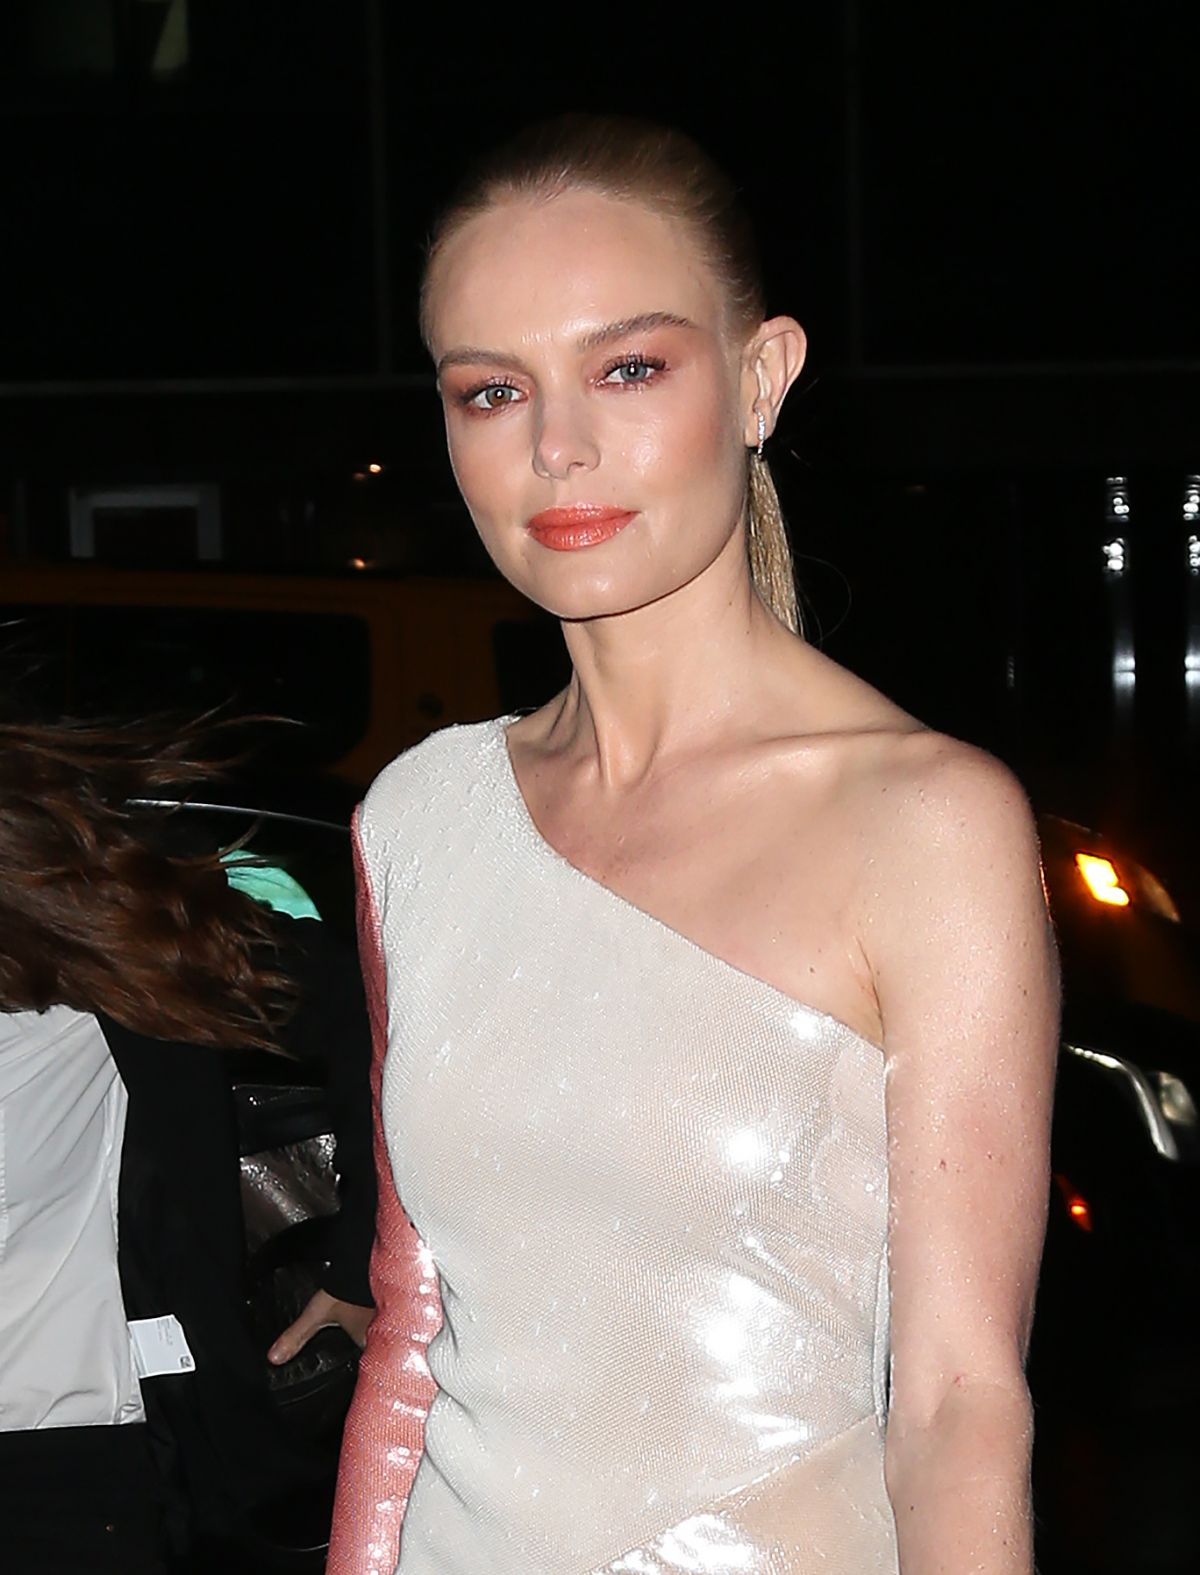 KATE BOSWORTH at 2017 ... Kate Bosworth